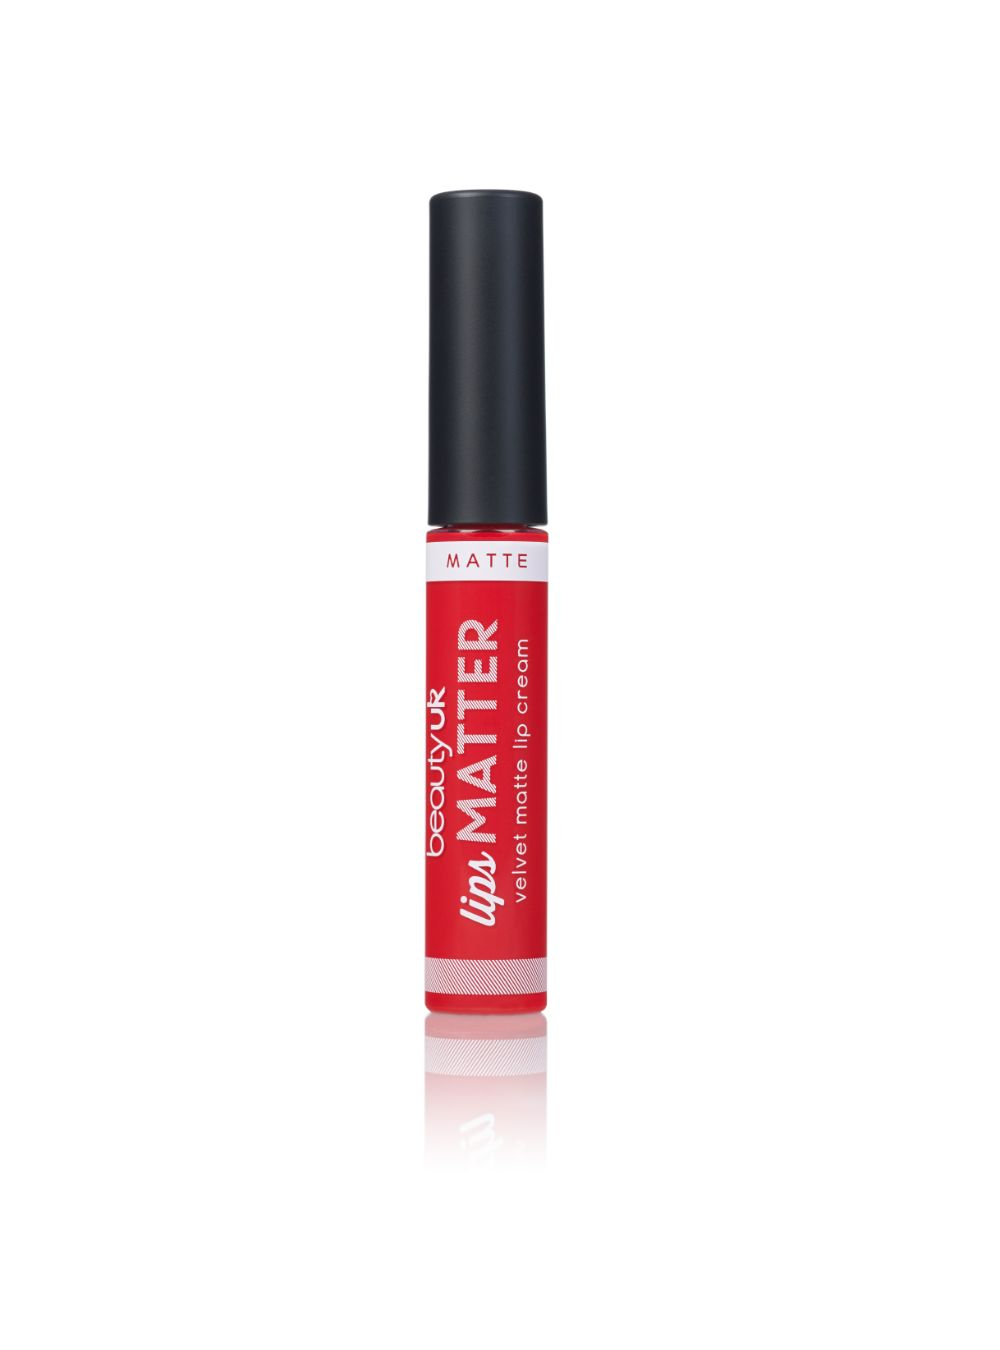 Lips Matter - Radical Red by BeautyUK - ClothesLabels.UK